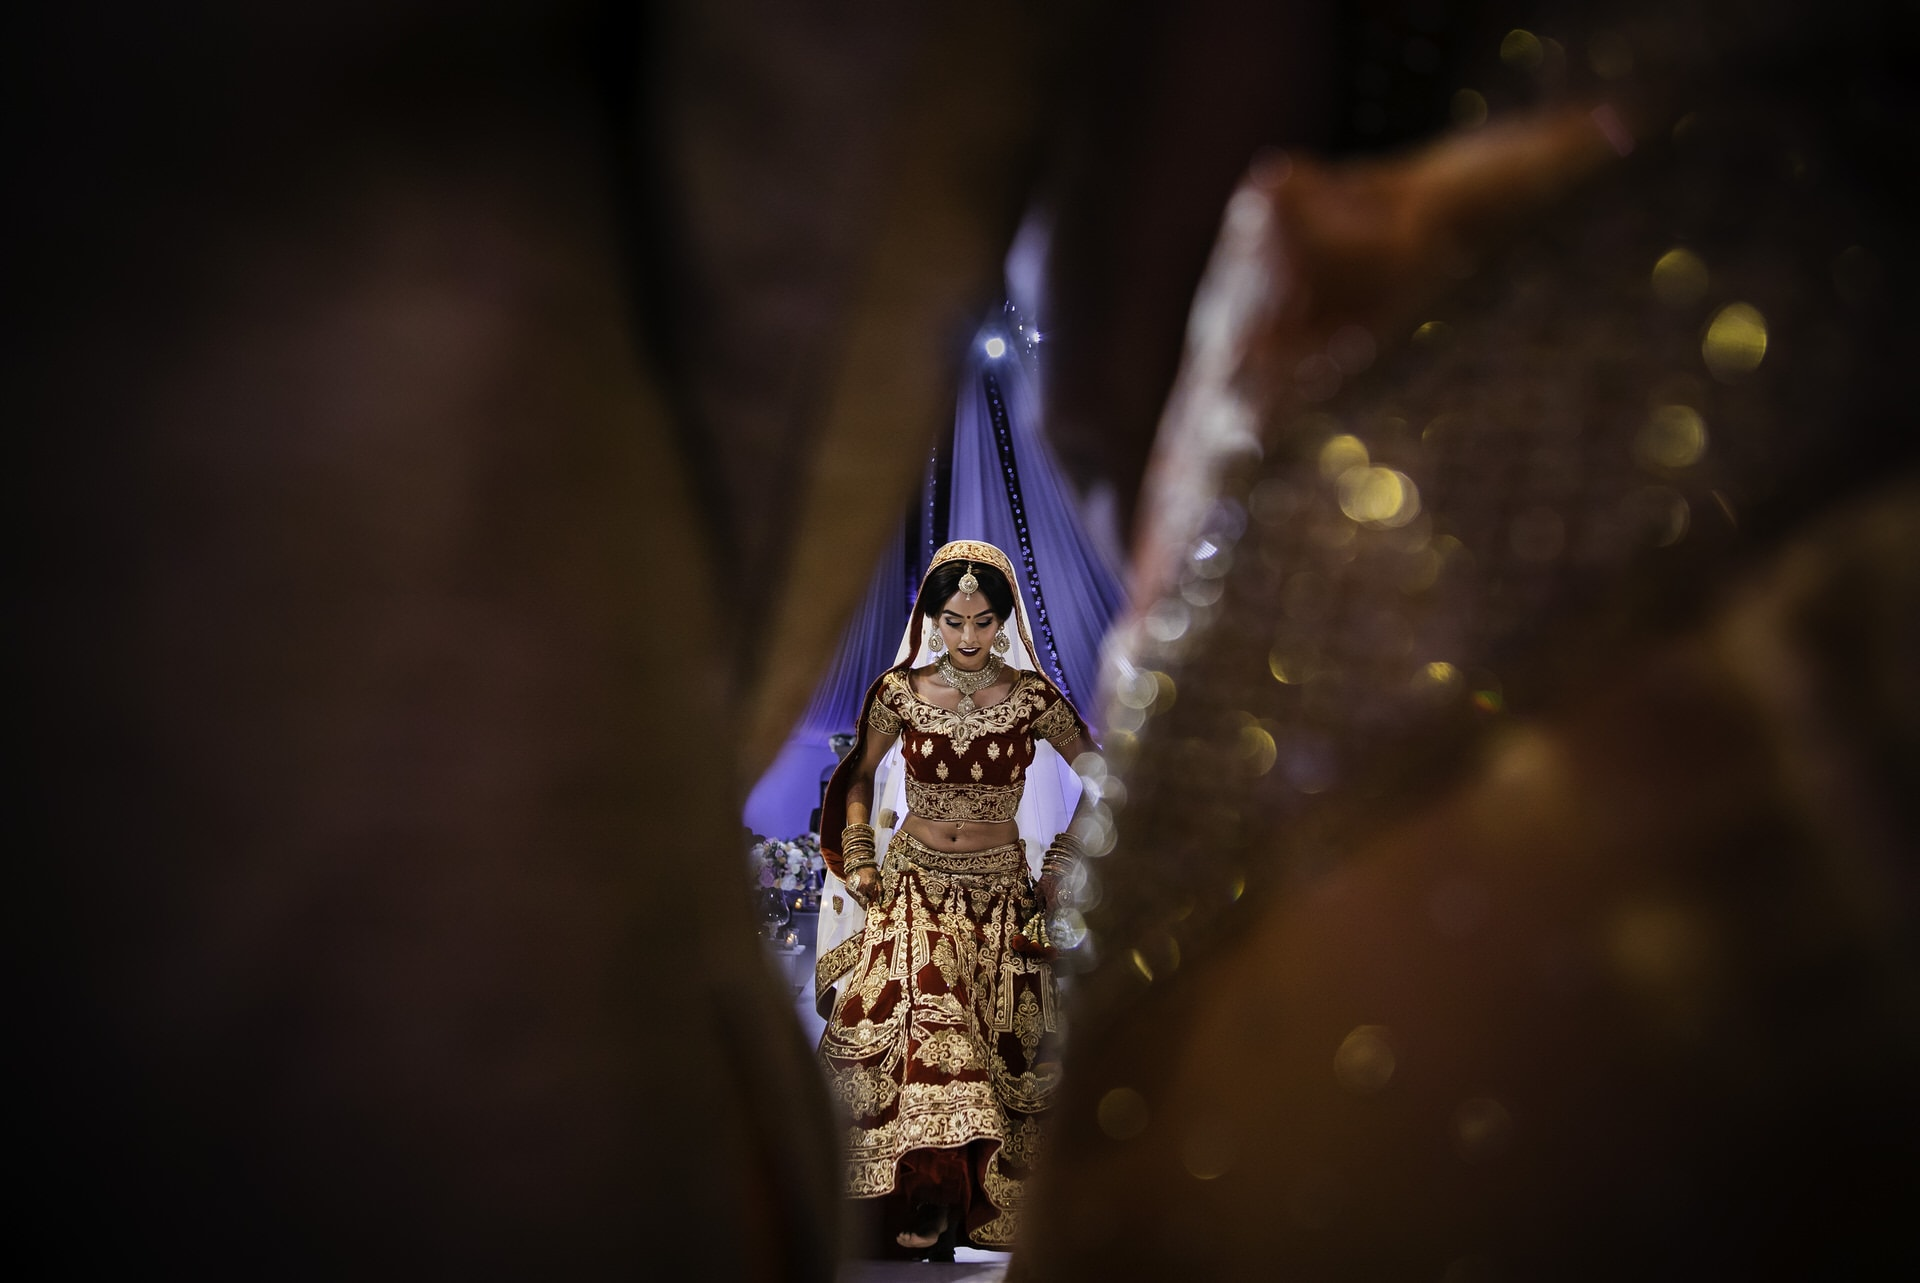 Indian Bride stepping into the mandap